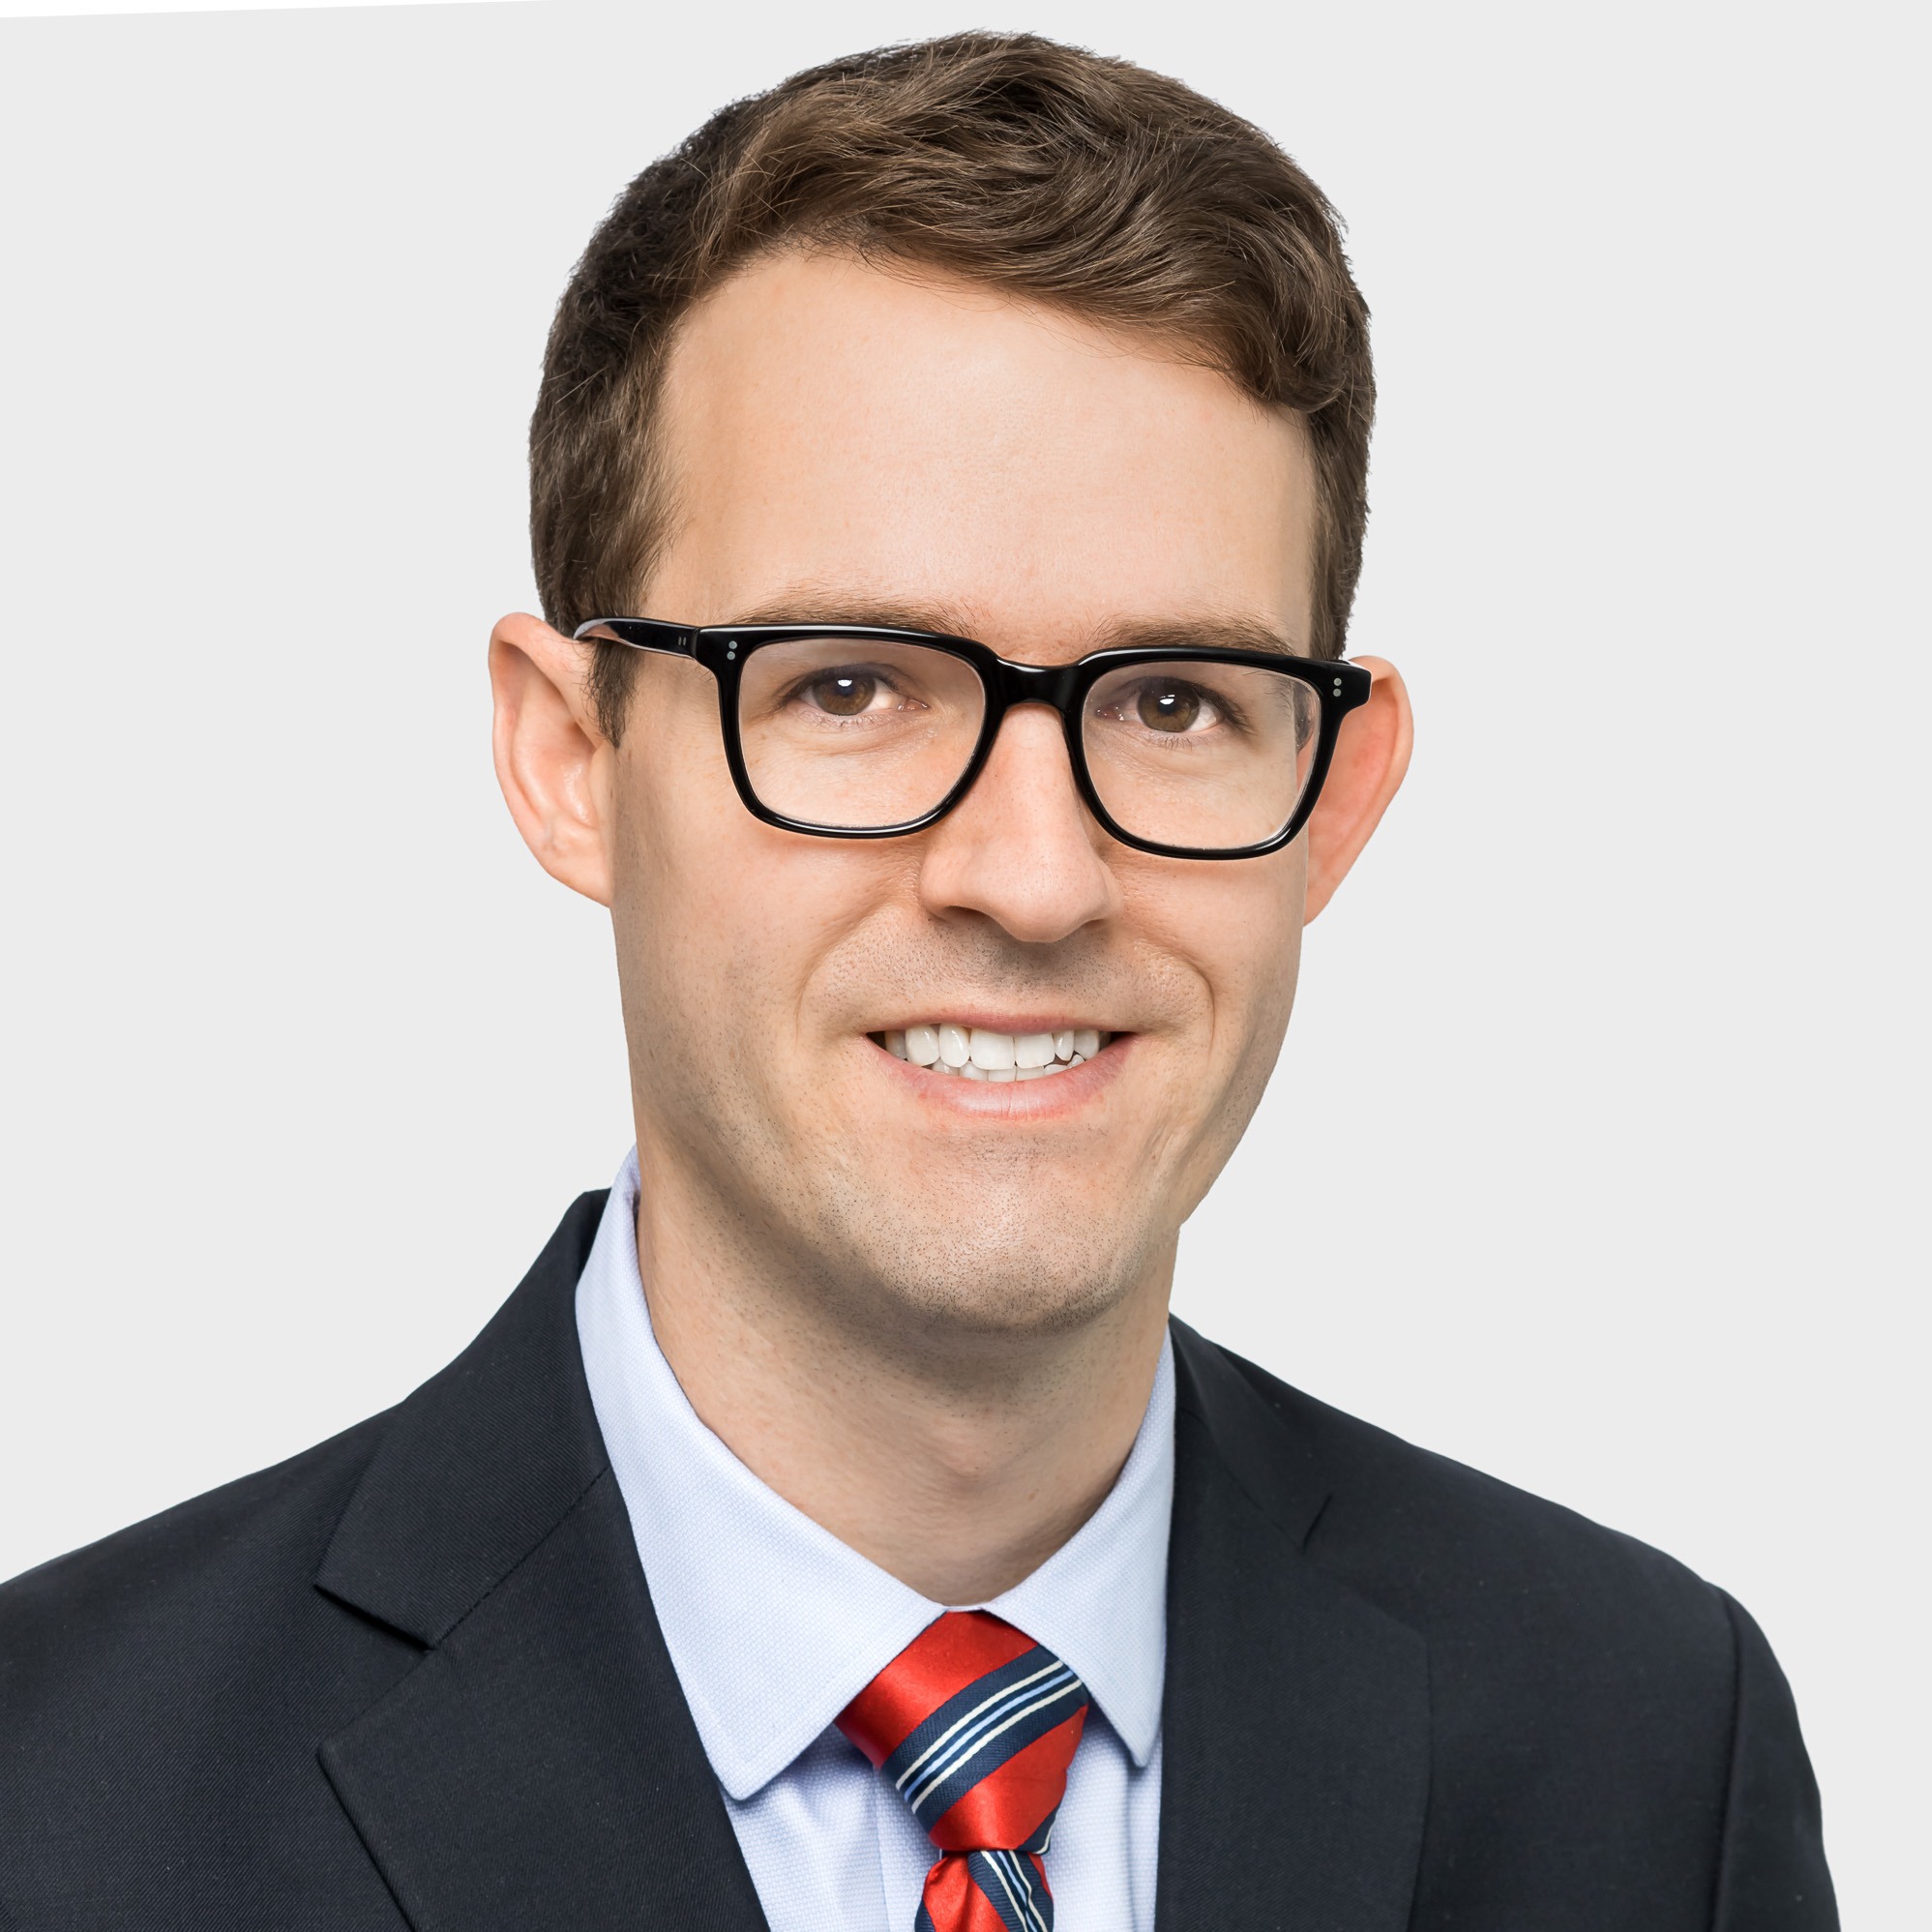 Profile picture of Andrew Quinn, the President at NOBE National Executive Board